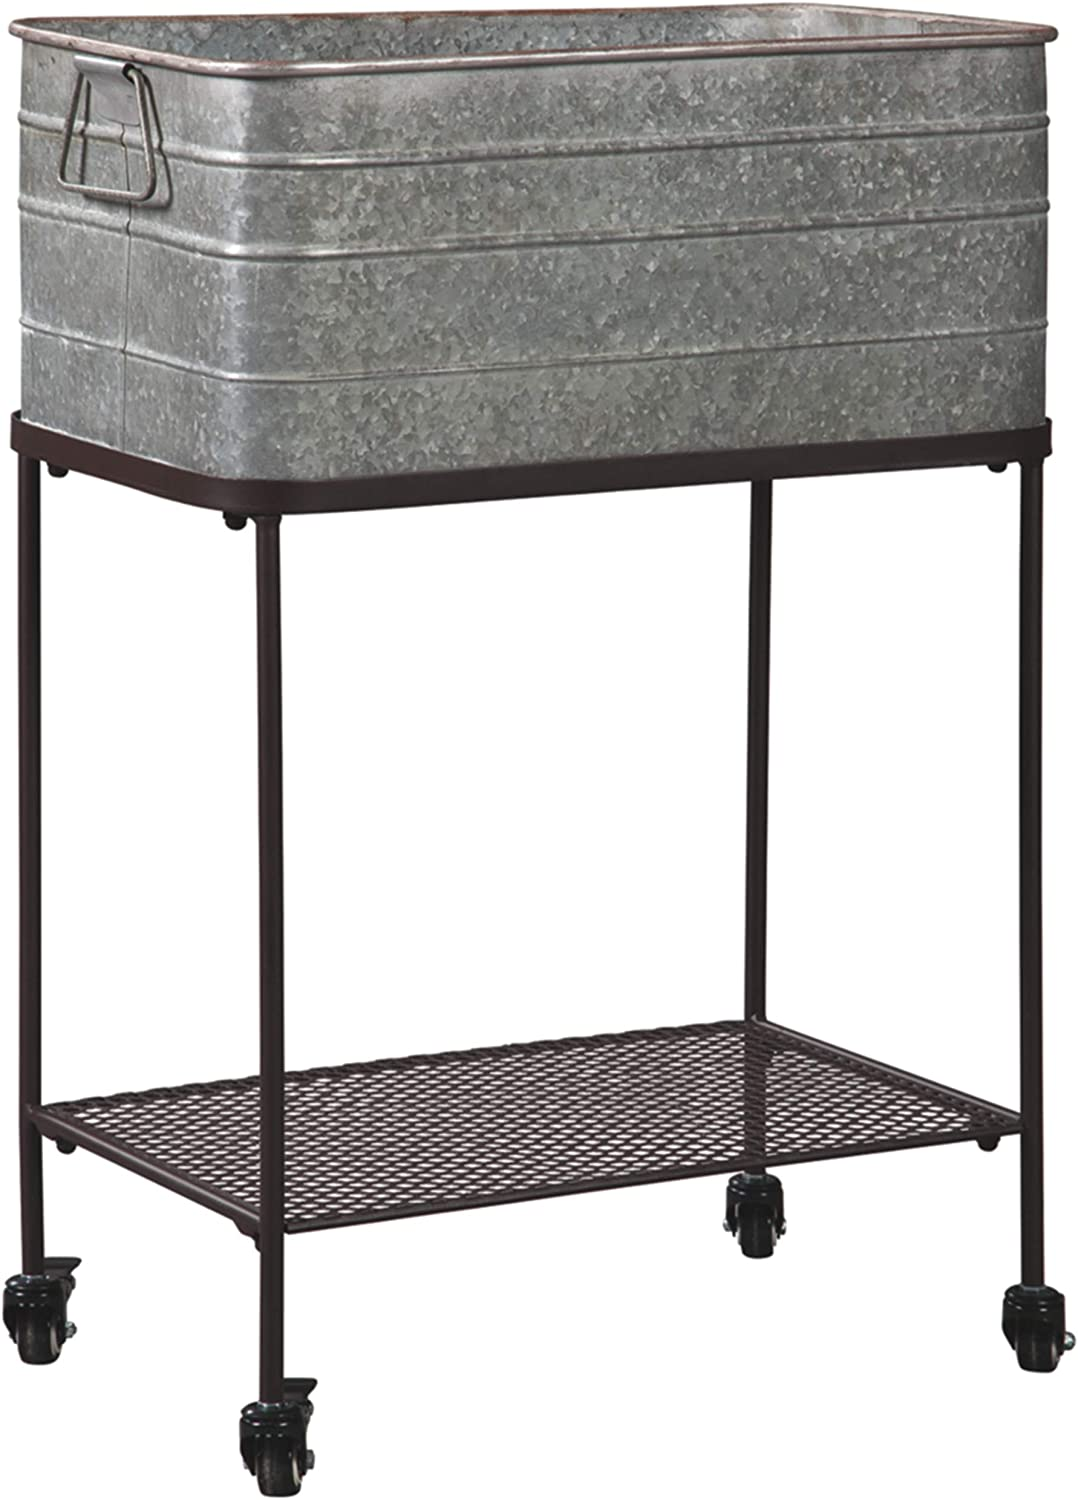 Signature Design by Ashley - Vossman Beverage Tub - Antique Gray/Brown